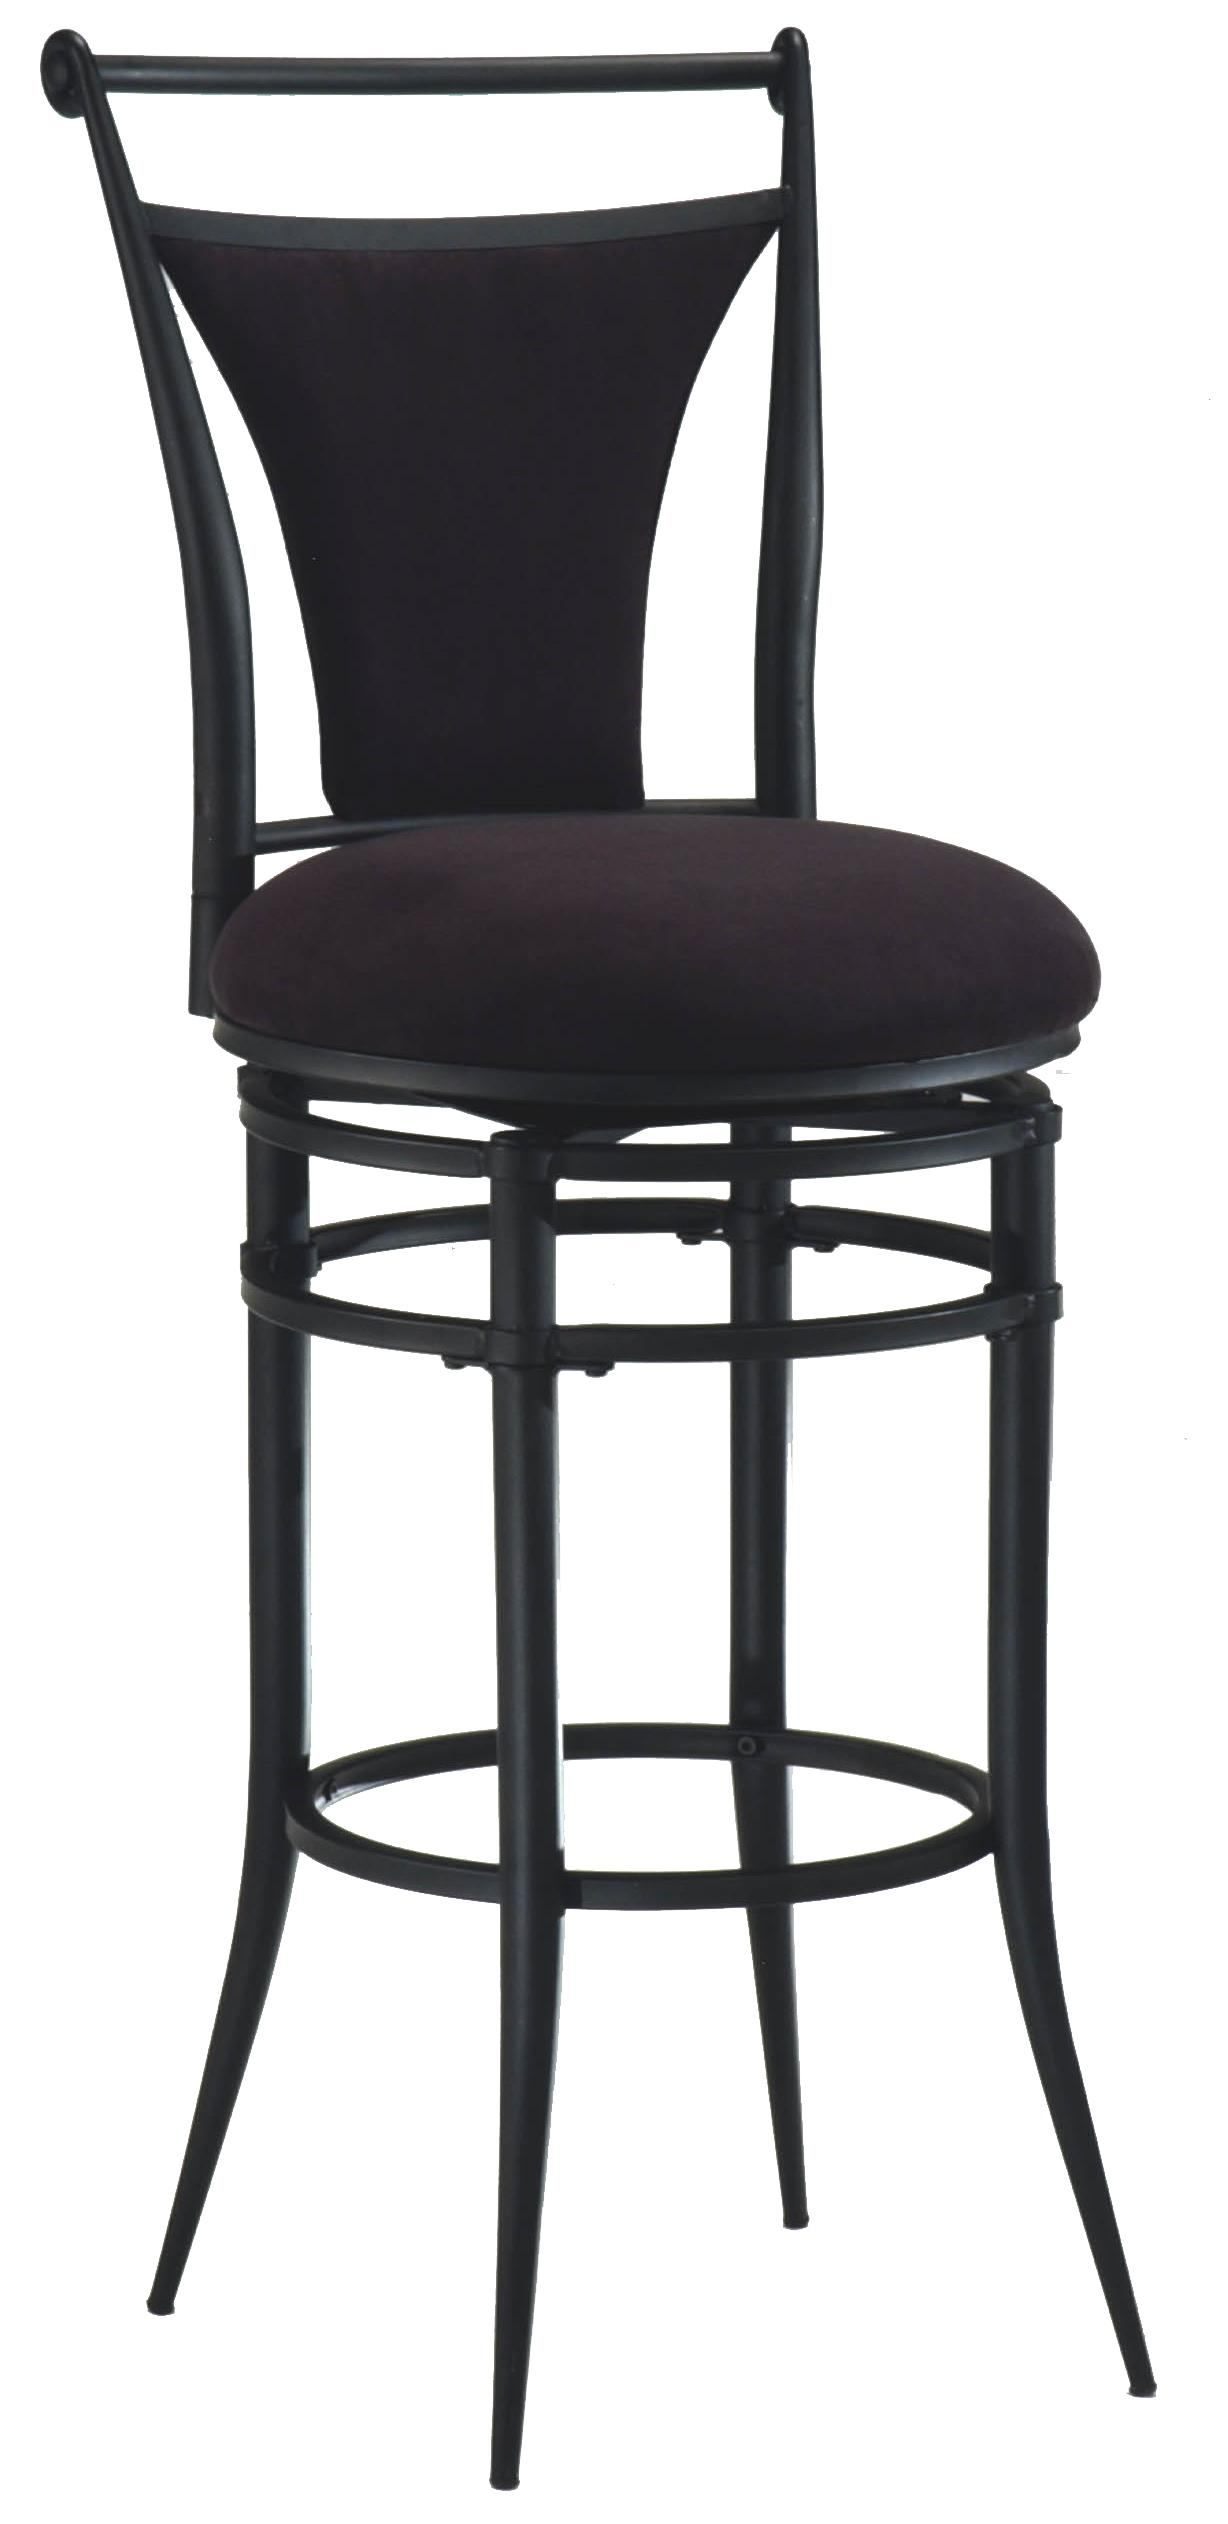 Hillsdale Cierra Swivel Counter Stool with Black Faux Suede in Black (Set of 2) 4592-826